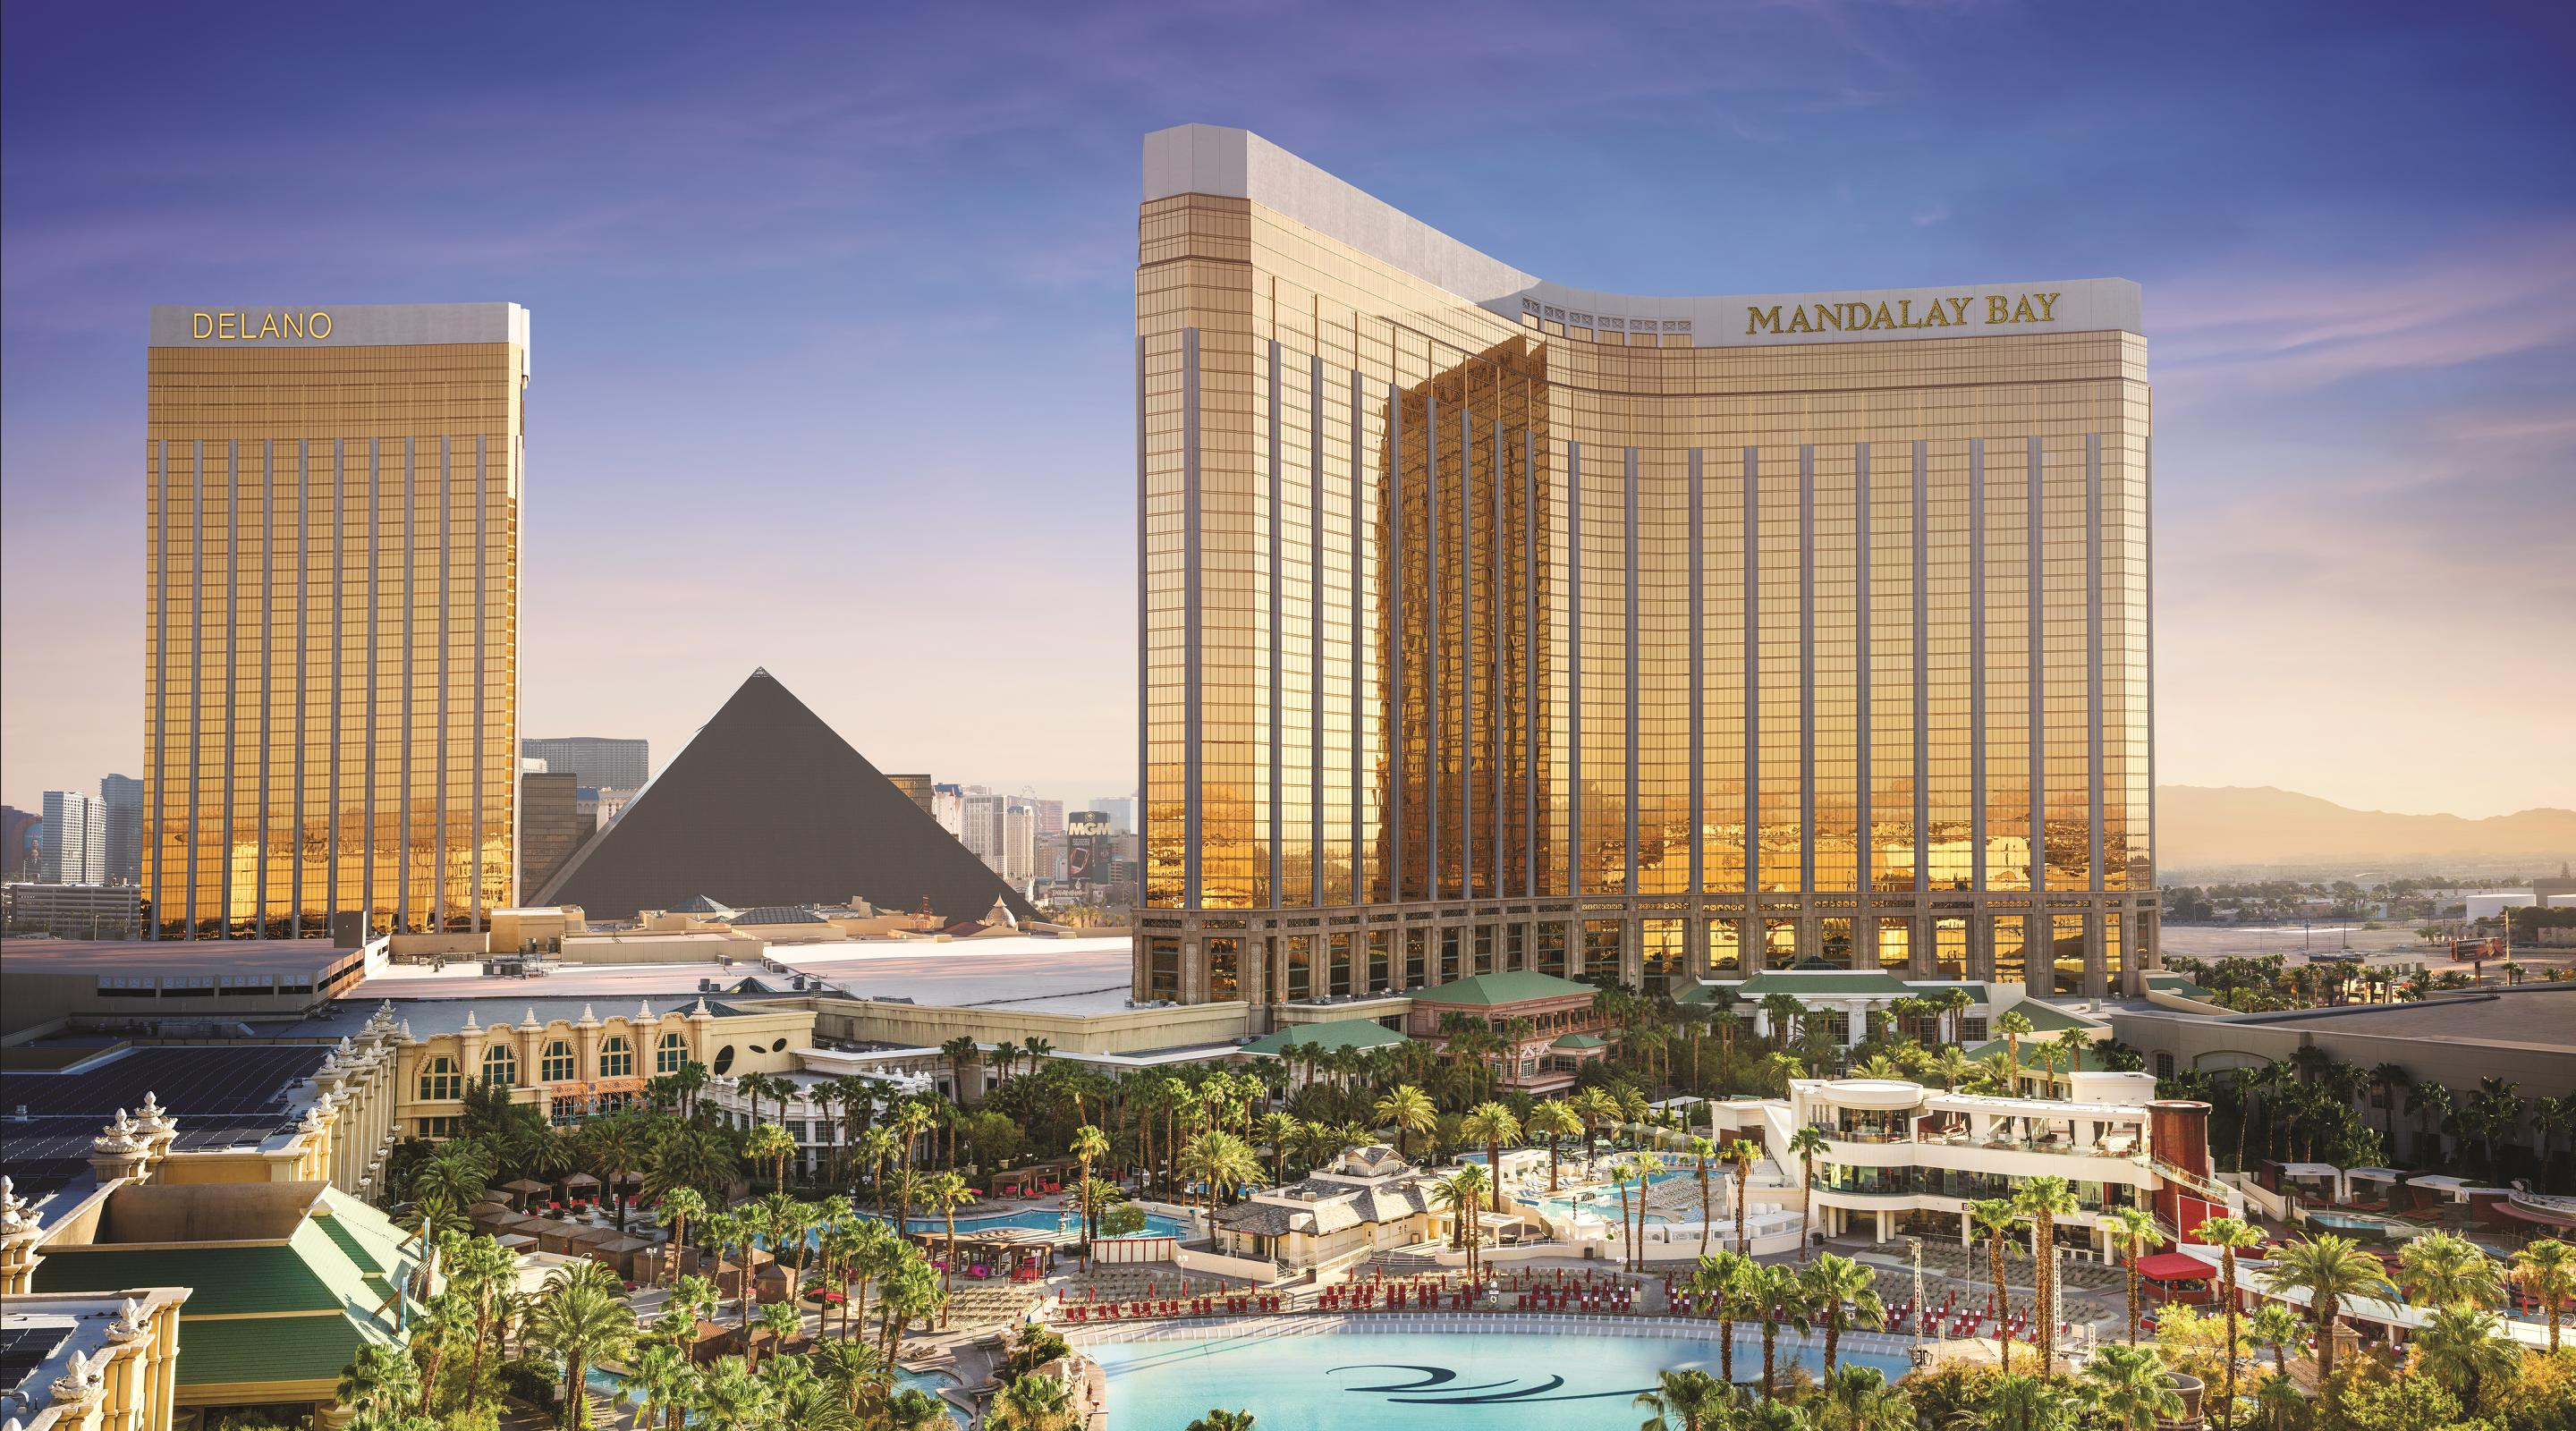 Mandalay Bay Reservations